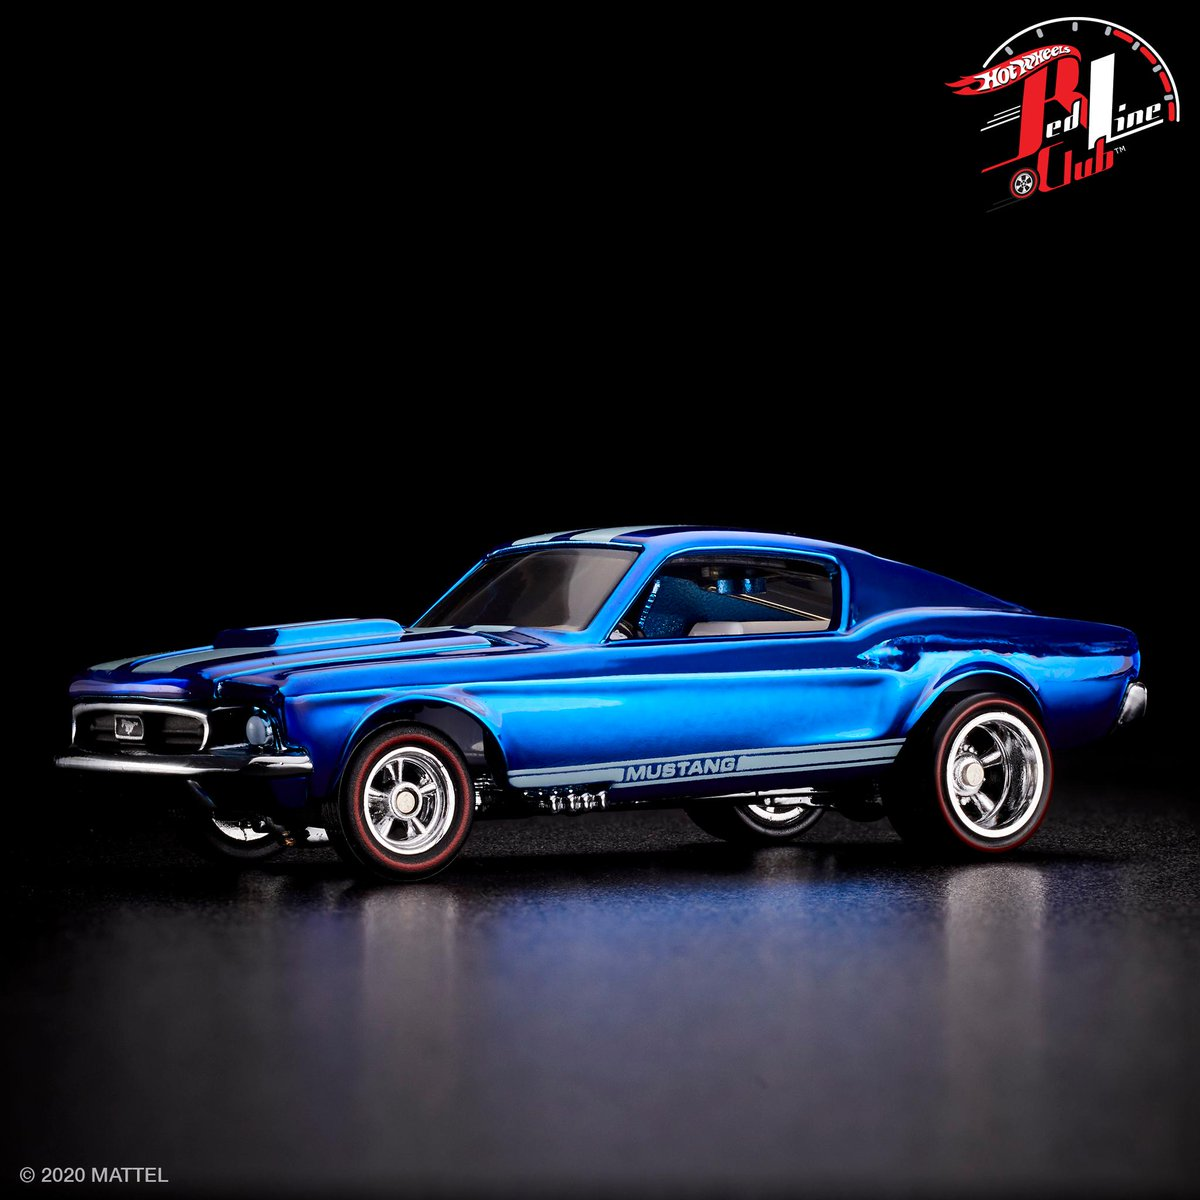 Nothing like a #HotWheels 16 upgrade!  This Otto blue custom Mustang is available now, exclusively for Red Line Club members. pic.twitter.com/3GsnWELIW1  by Hot Wheels